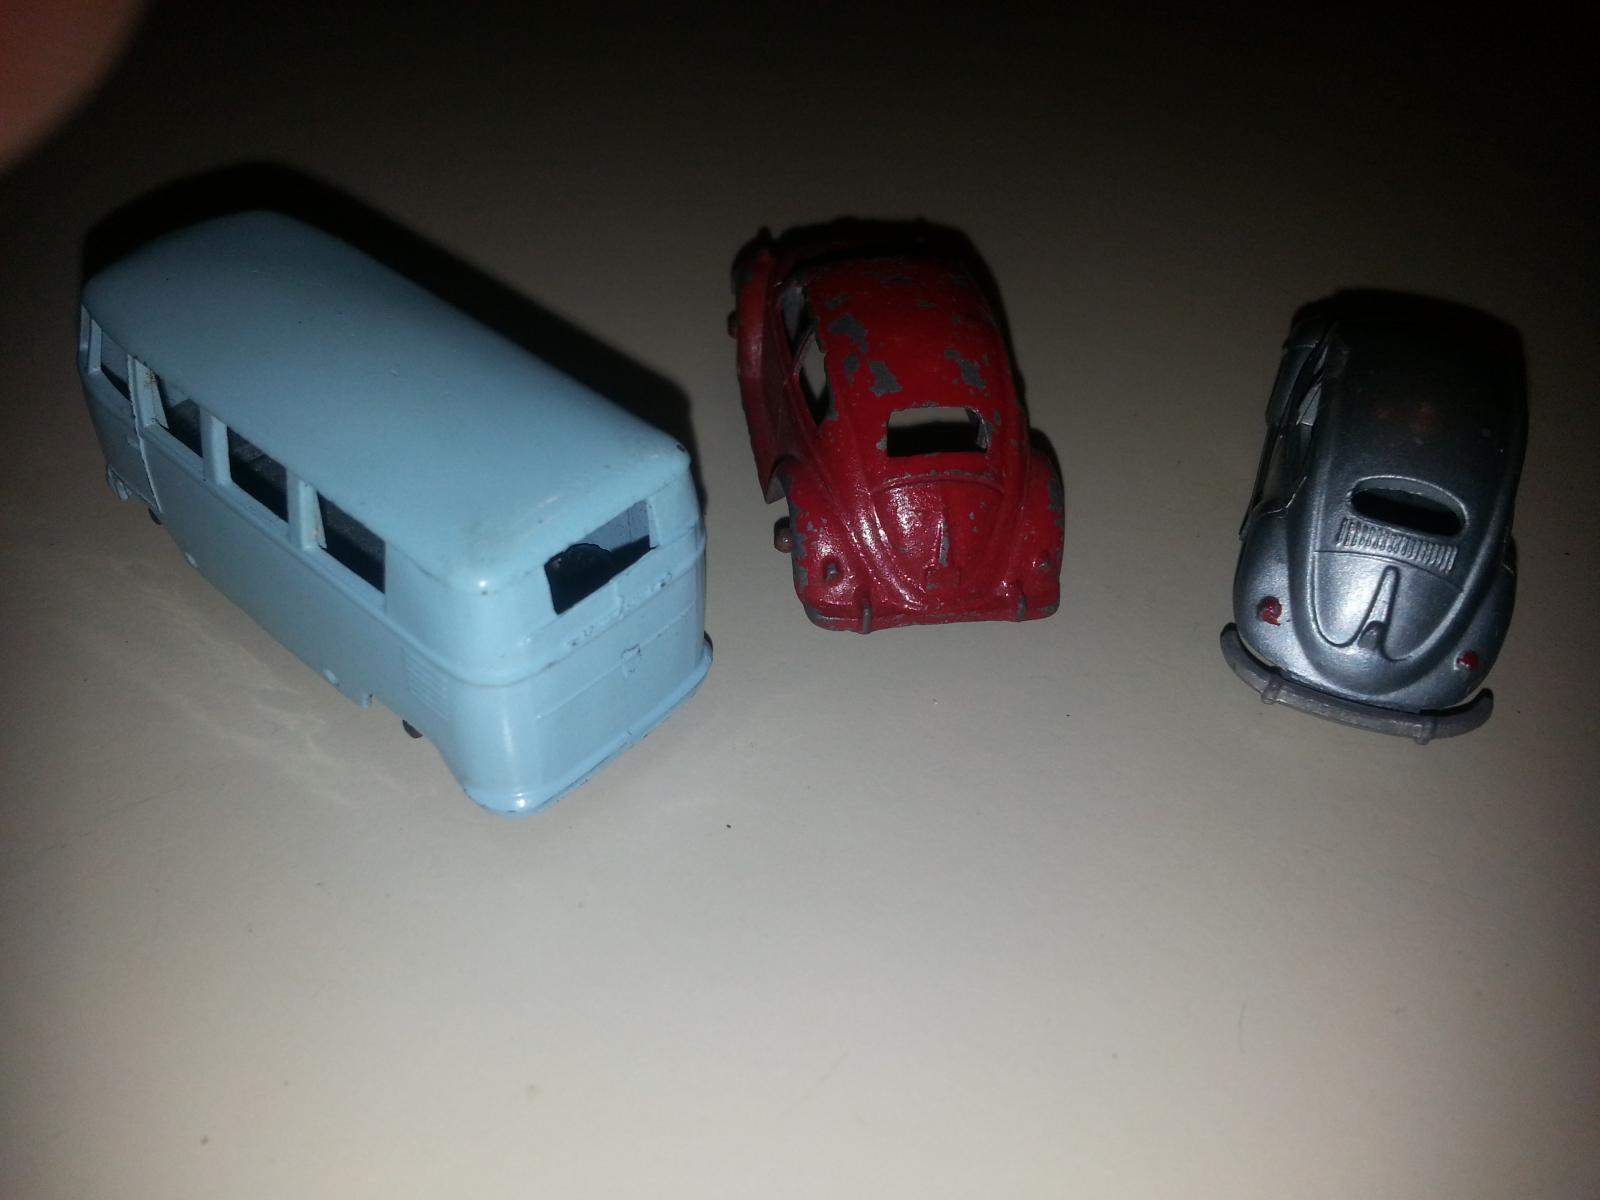 We where pulling some more vw toys to display...